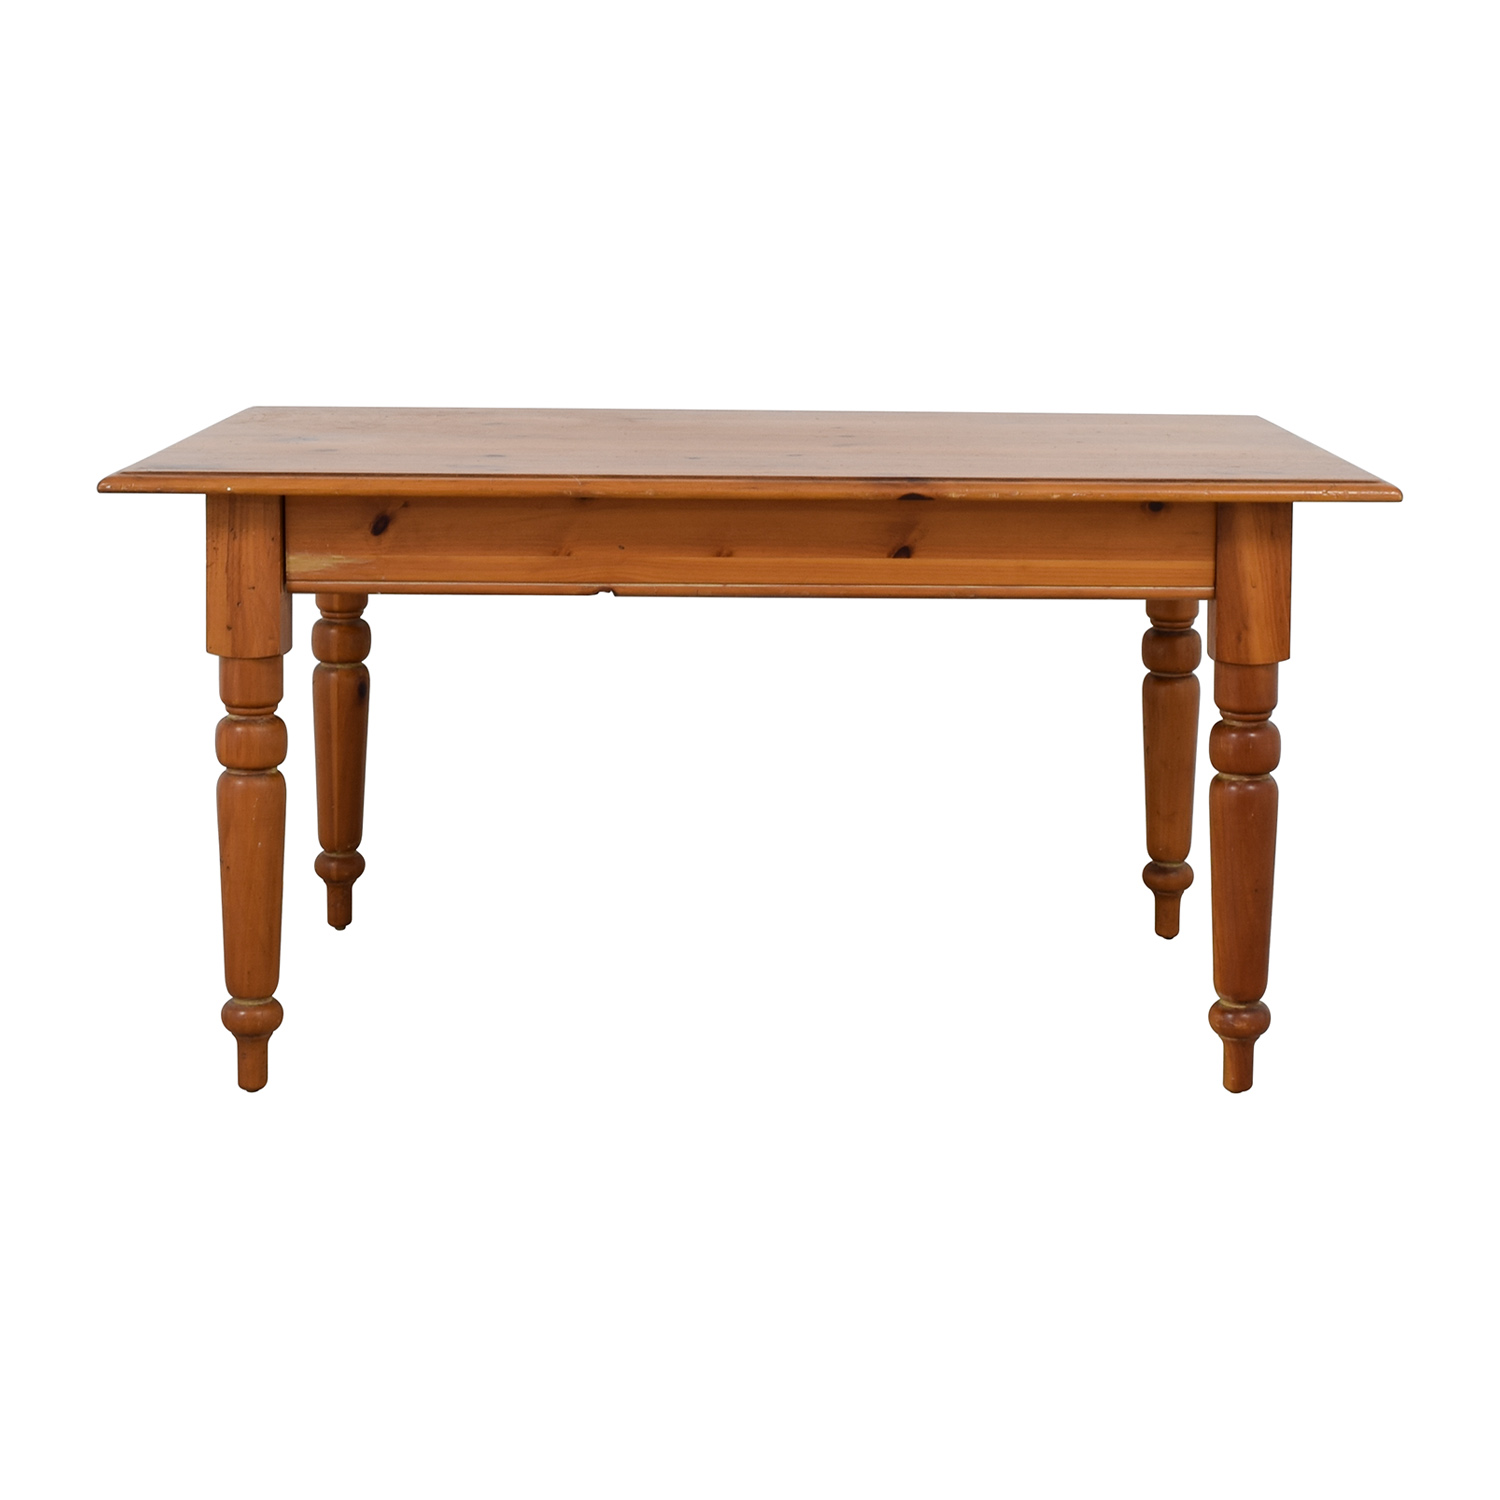 Southern Furniture Reproductions Southern Furniture Reproductions Dinner Table Tables